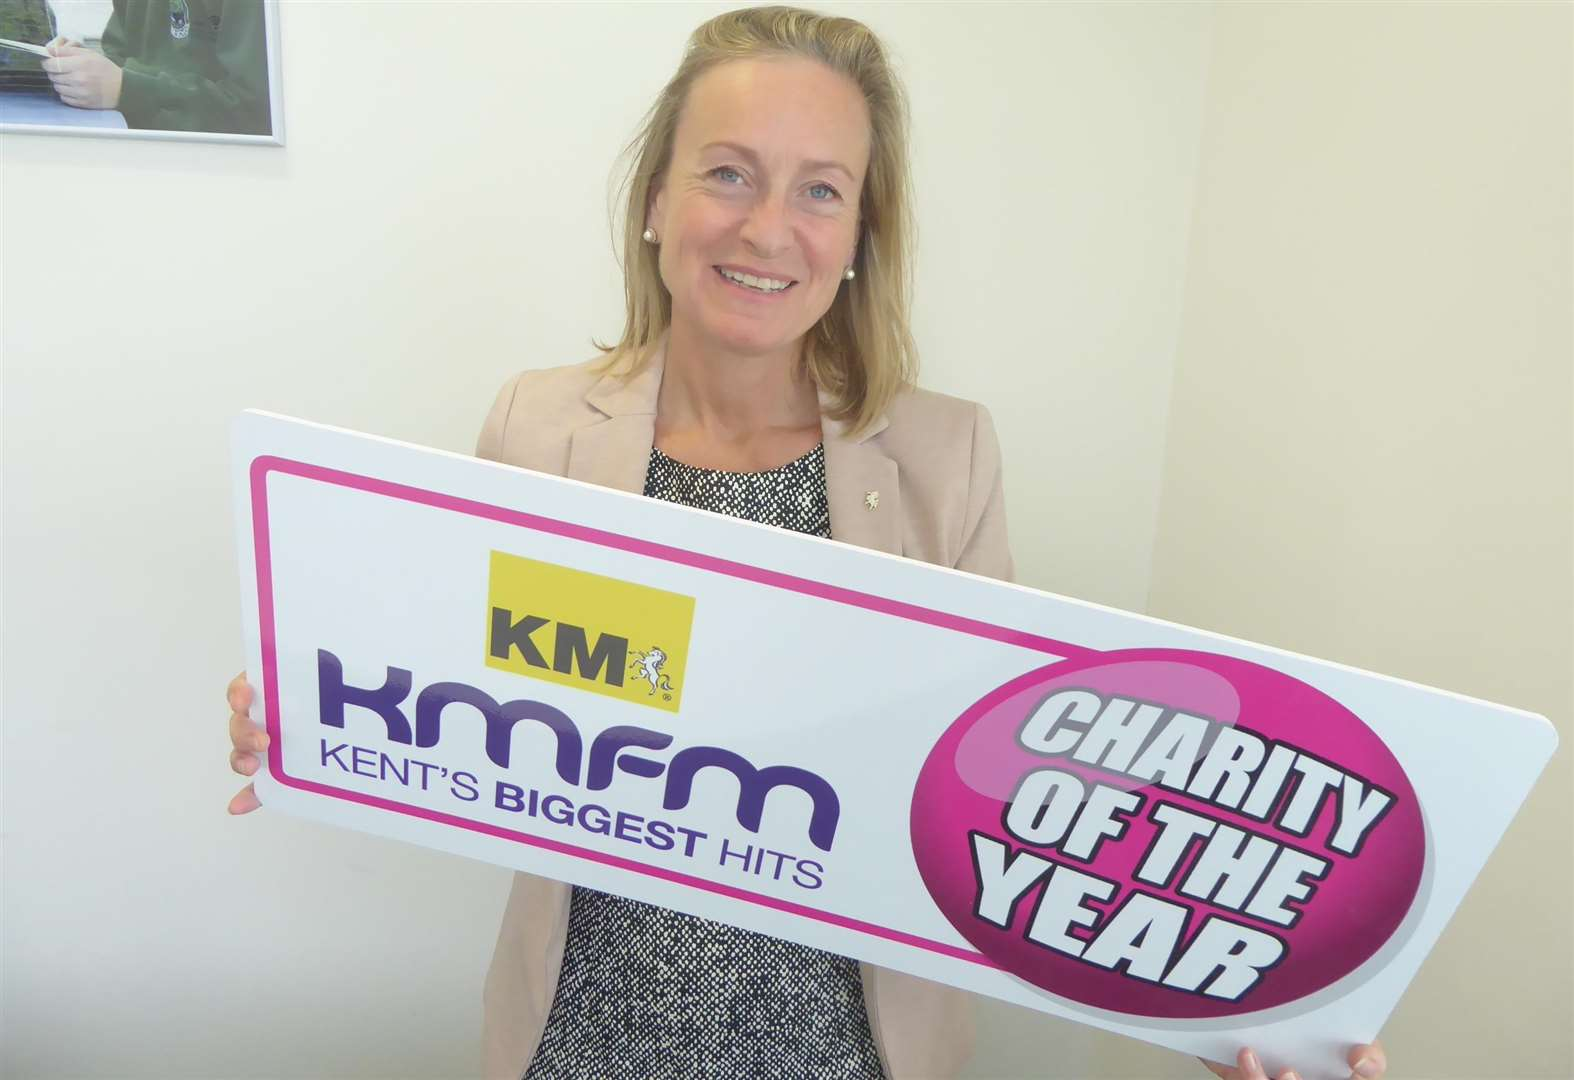 Media group is a charity champion